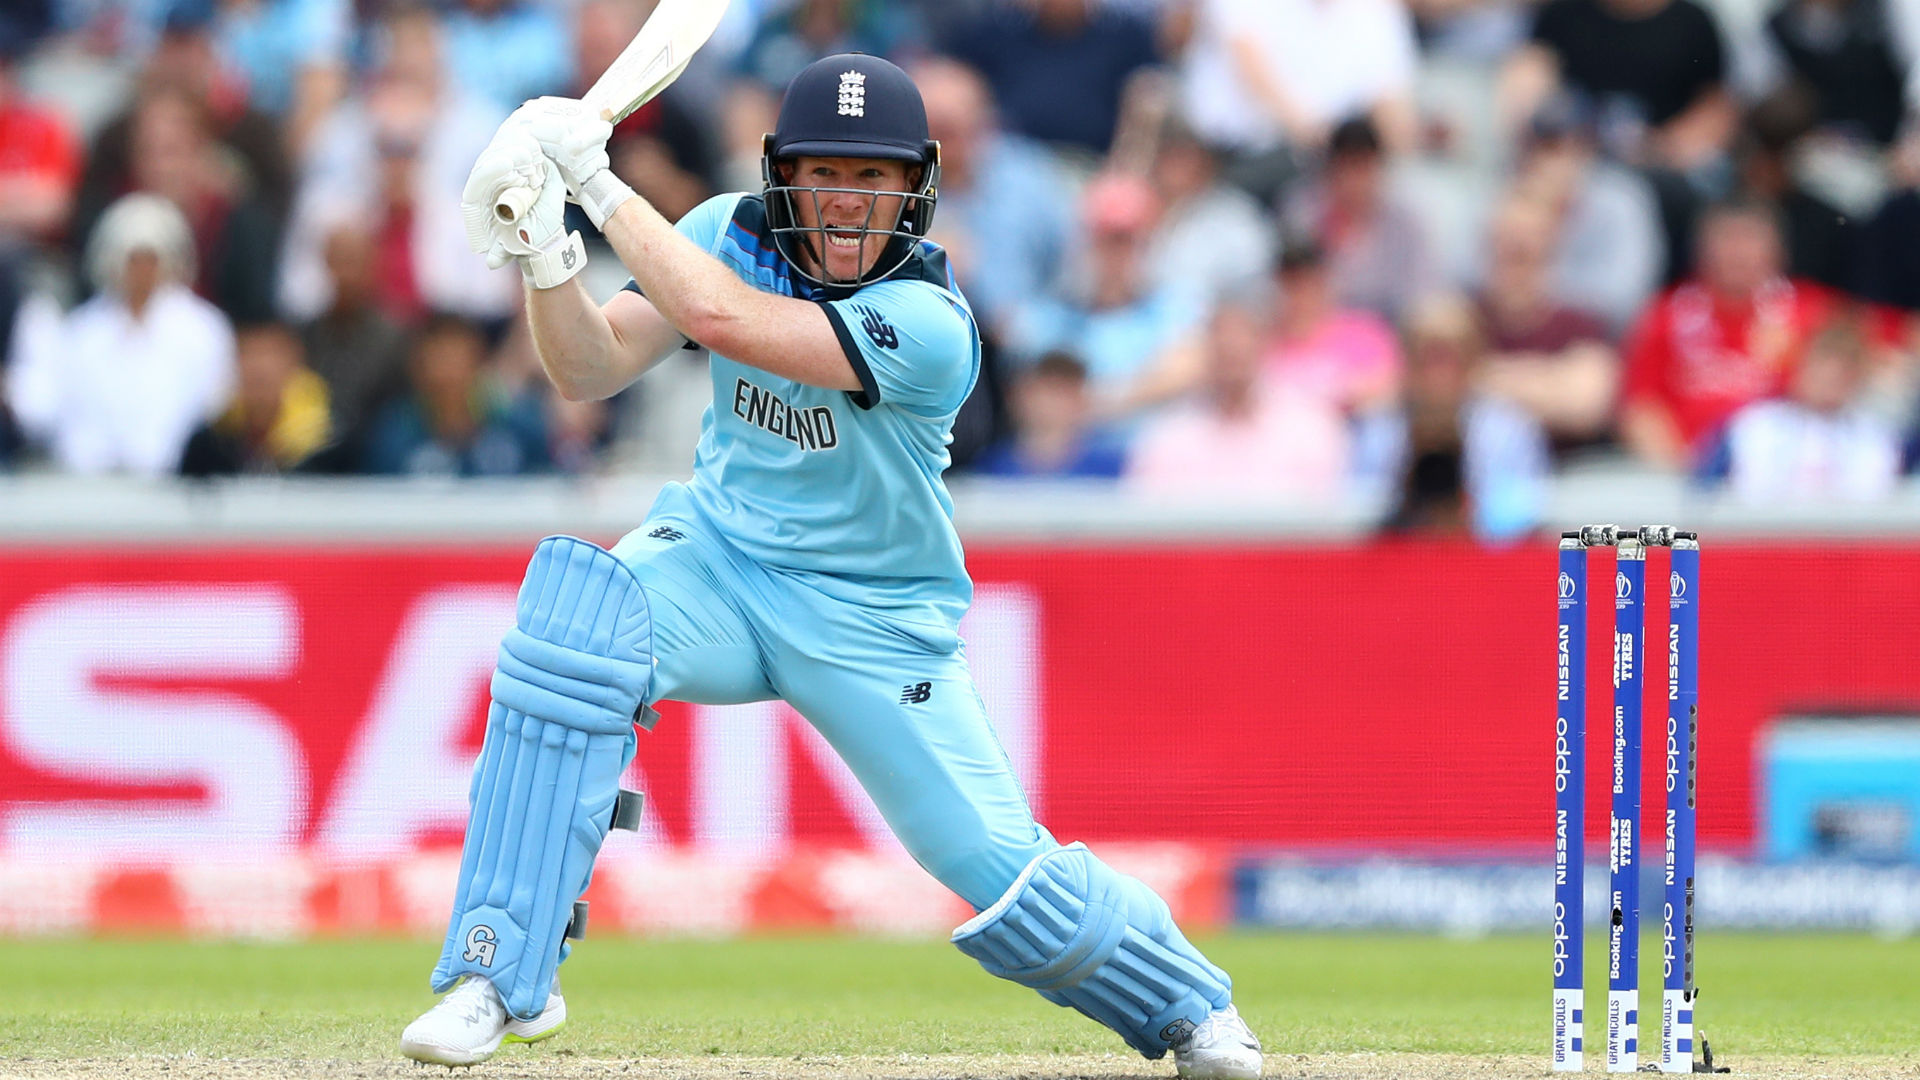 Record six hauls and the second worst ODI bowling figures - Morgan's maximum impact